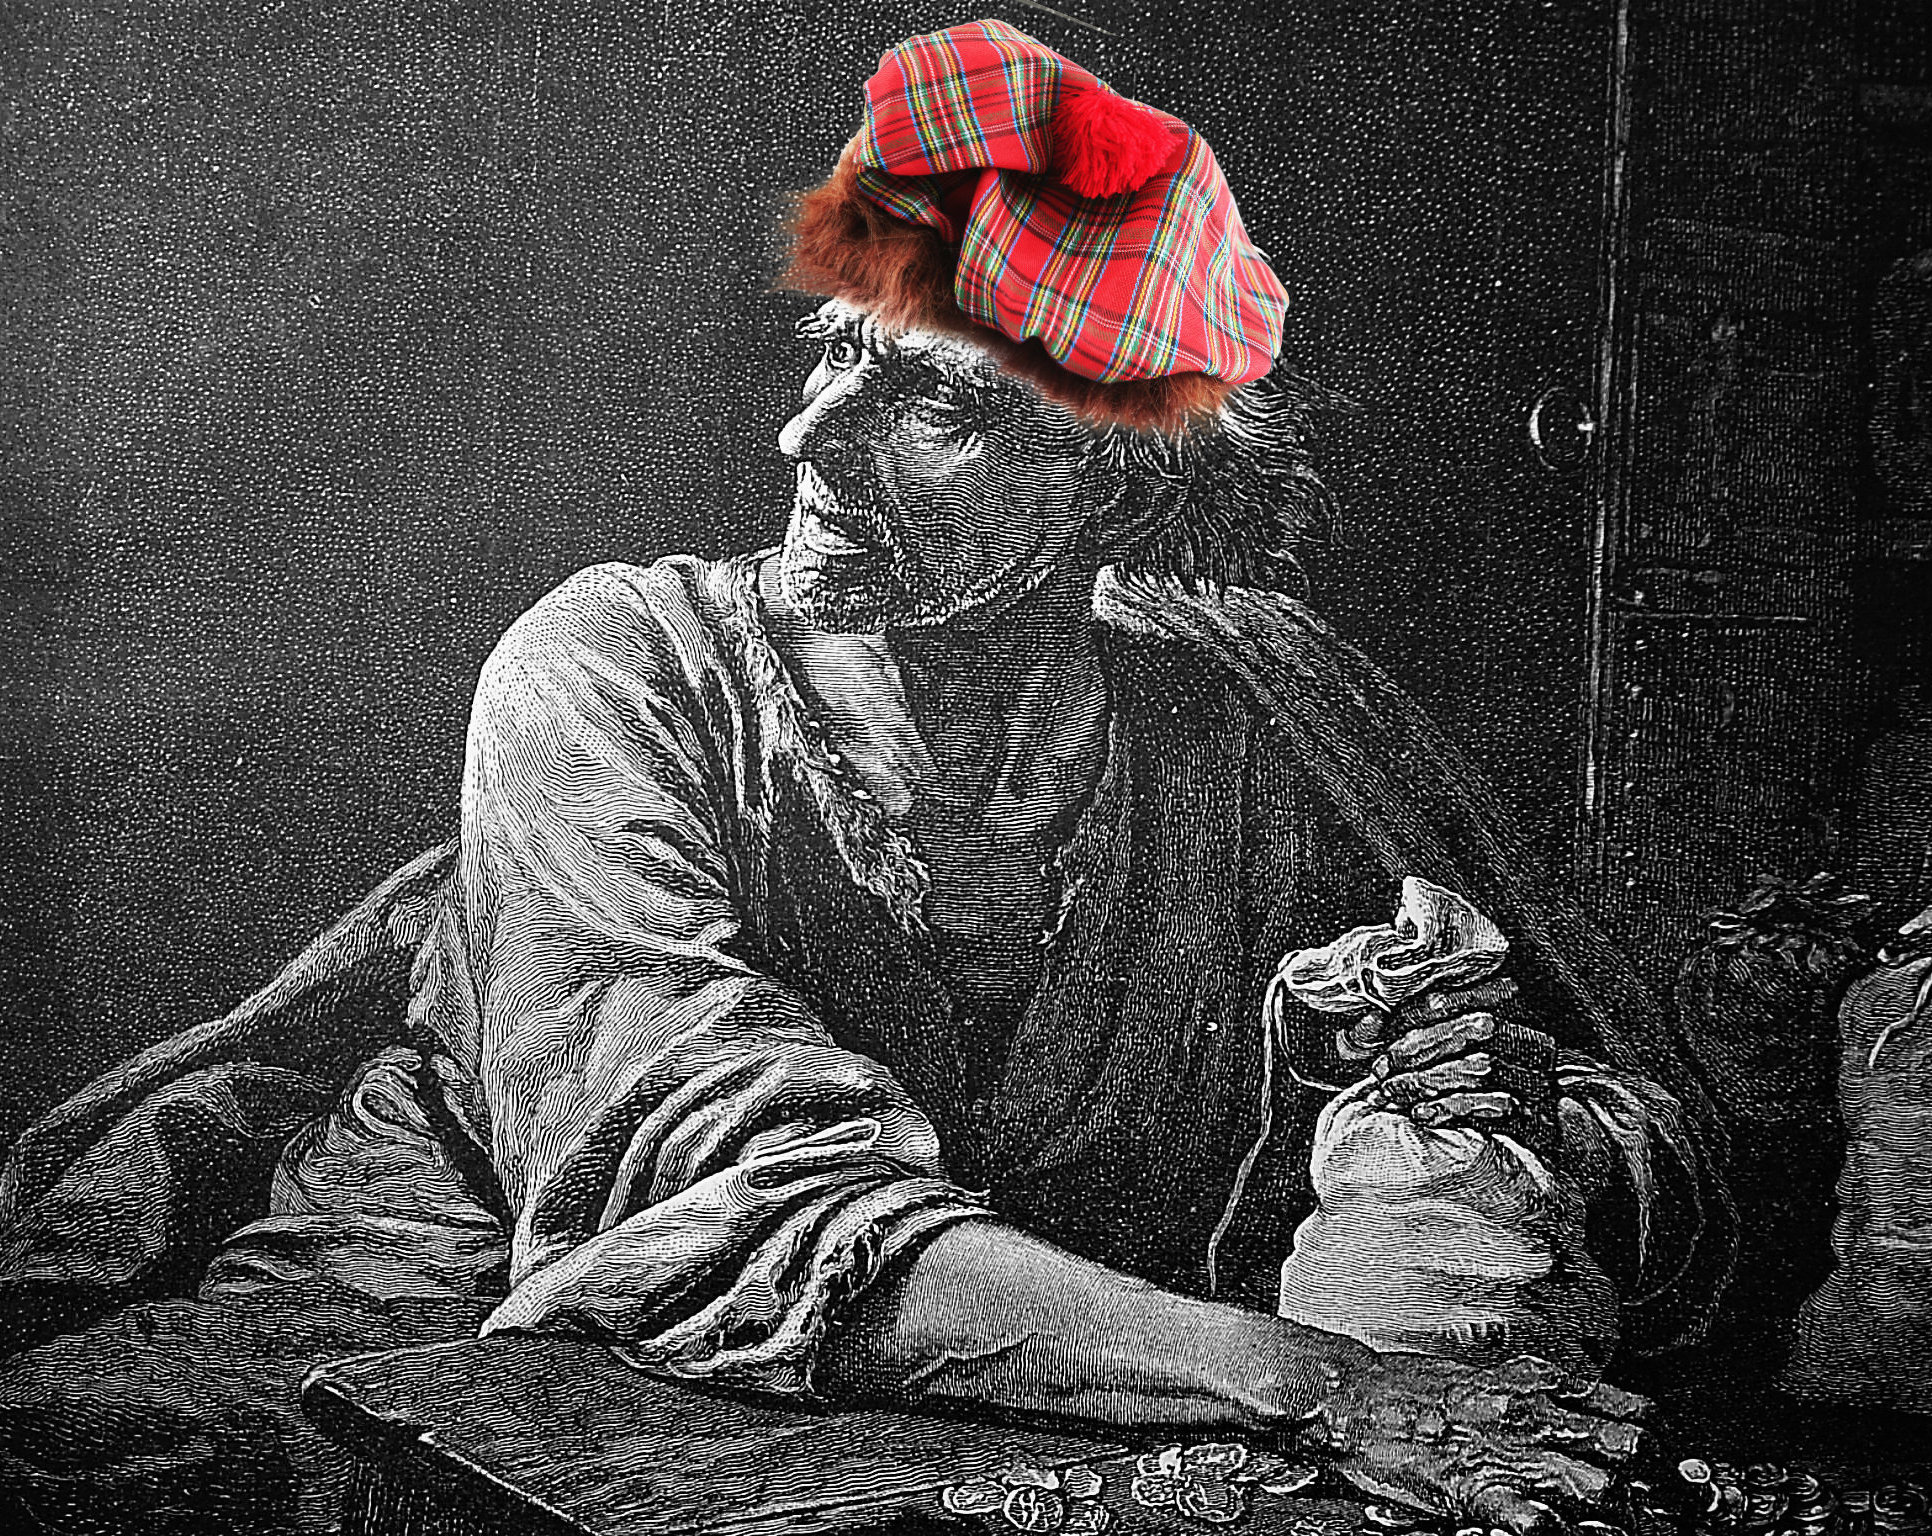 A representation of the stereotypically miserly Scot – as thought of by some